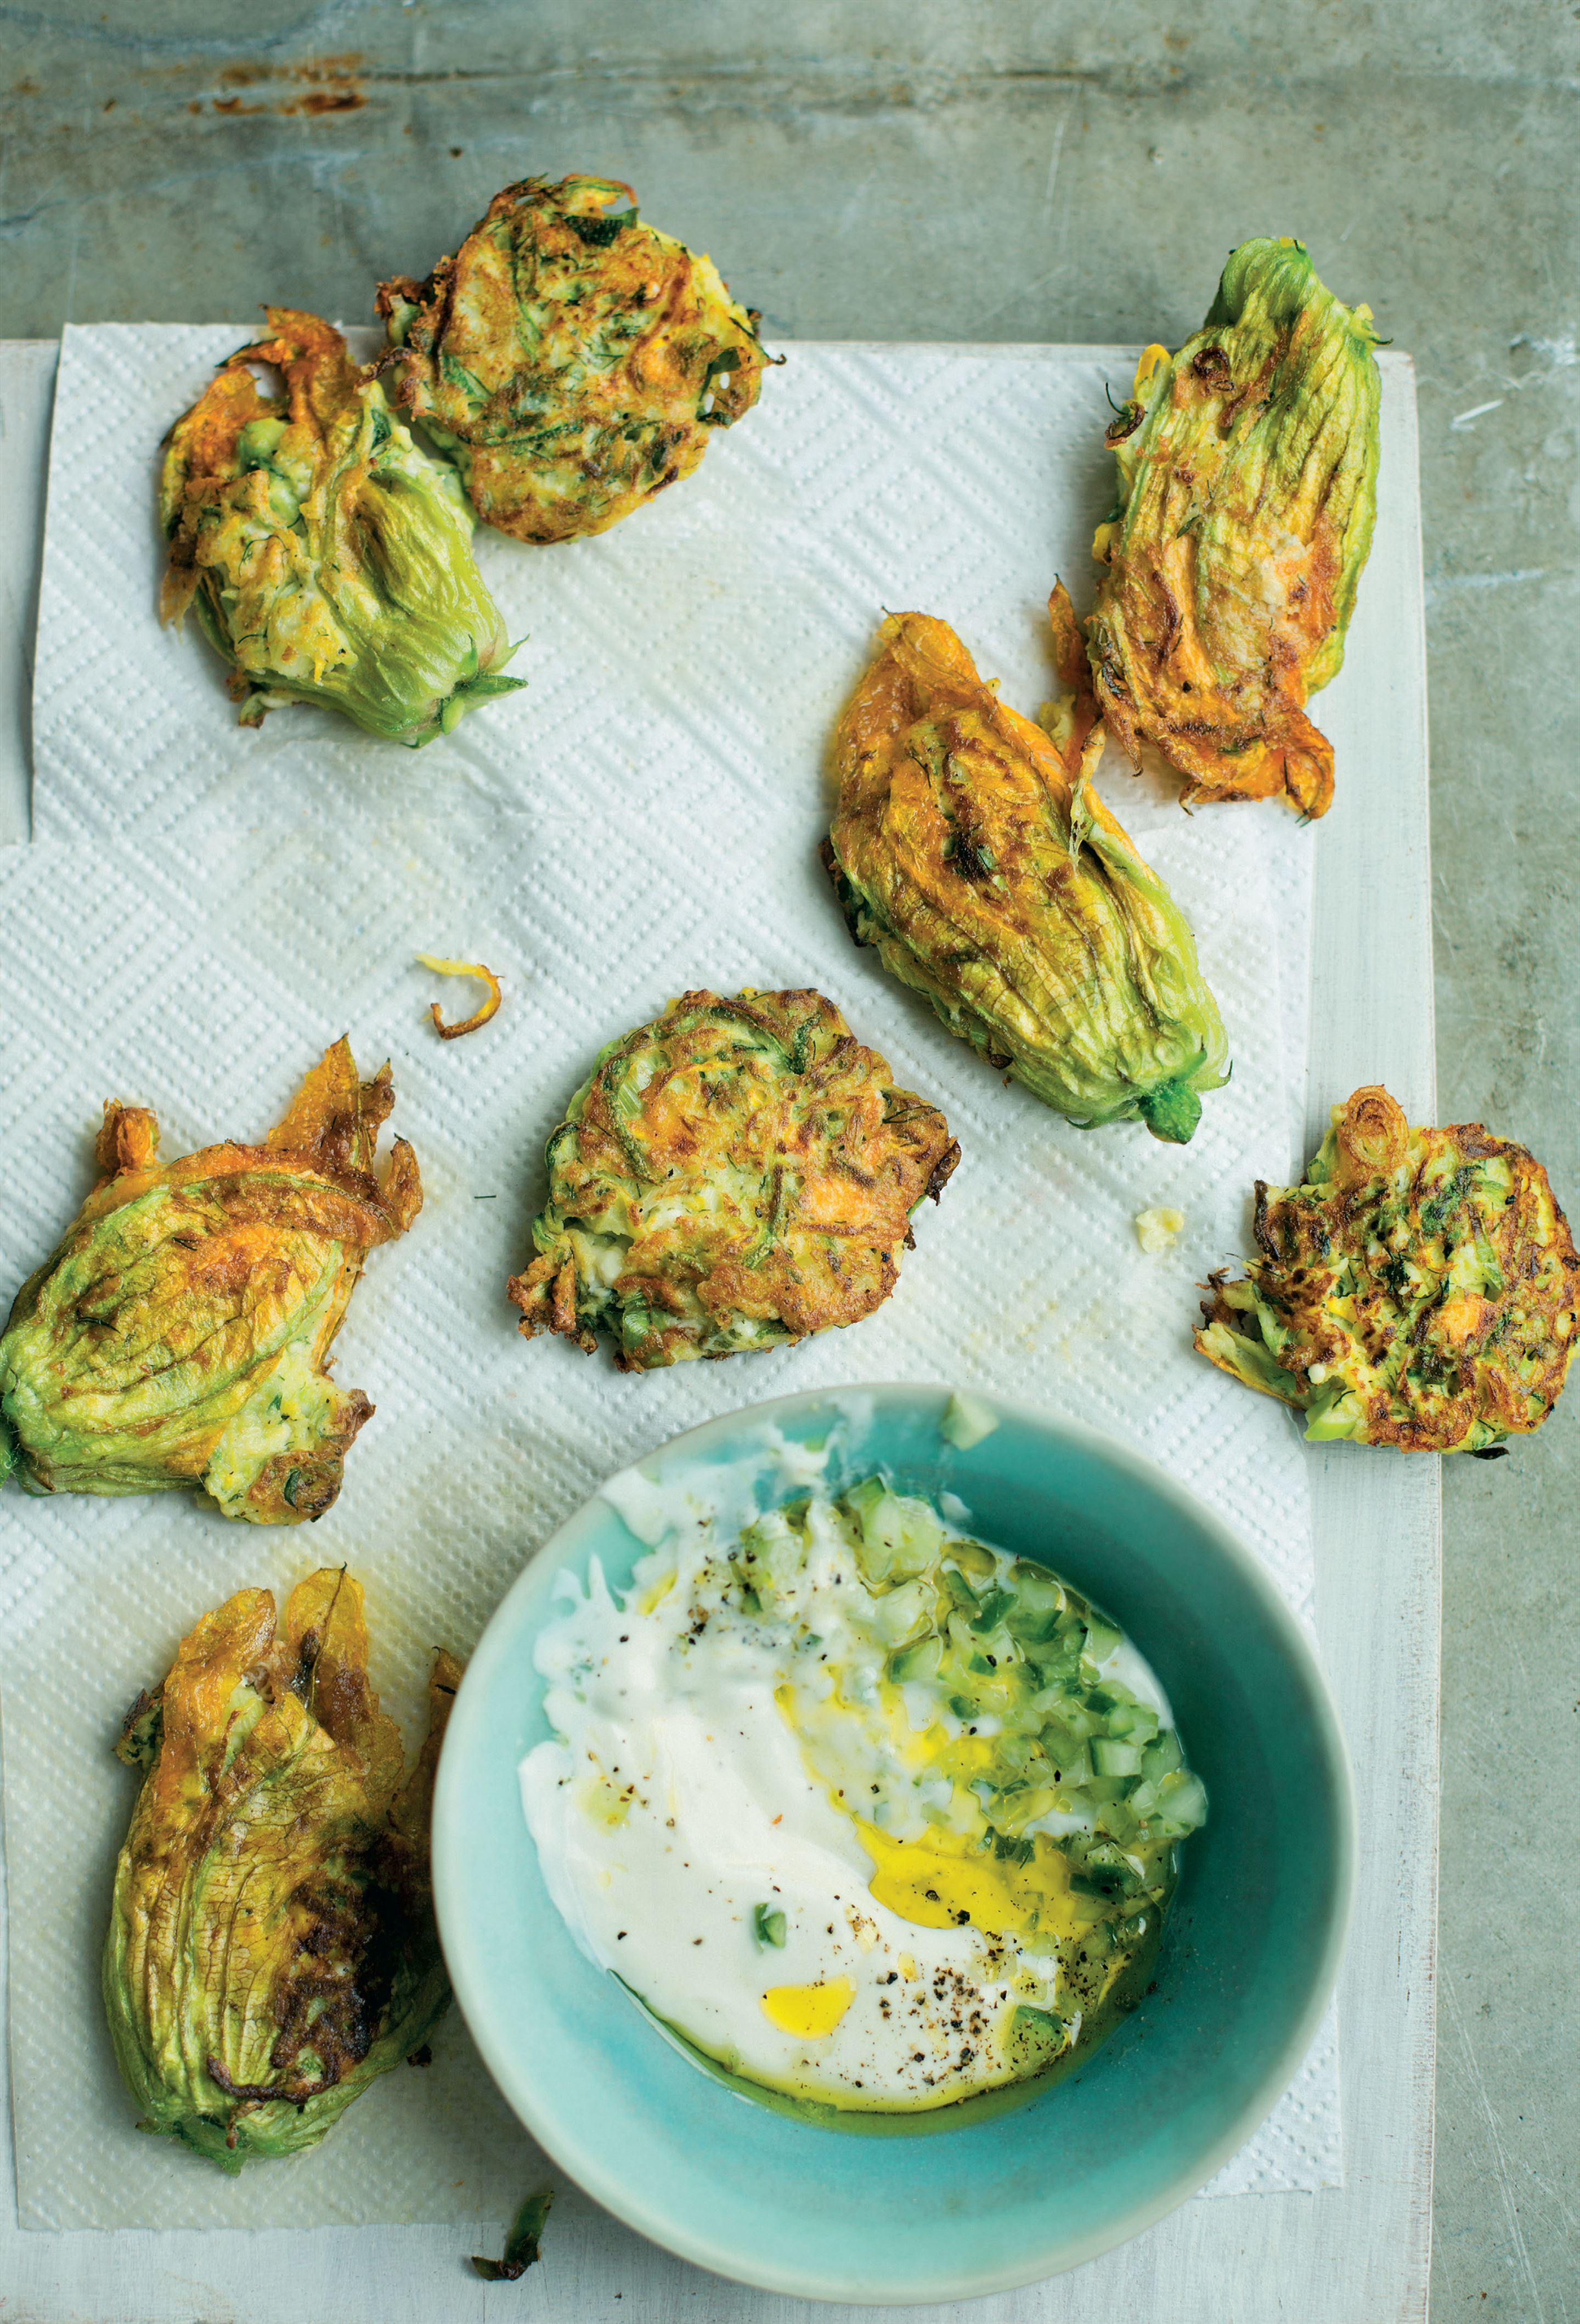 Courgette and feta fritters with yogurt